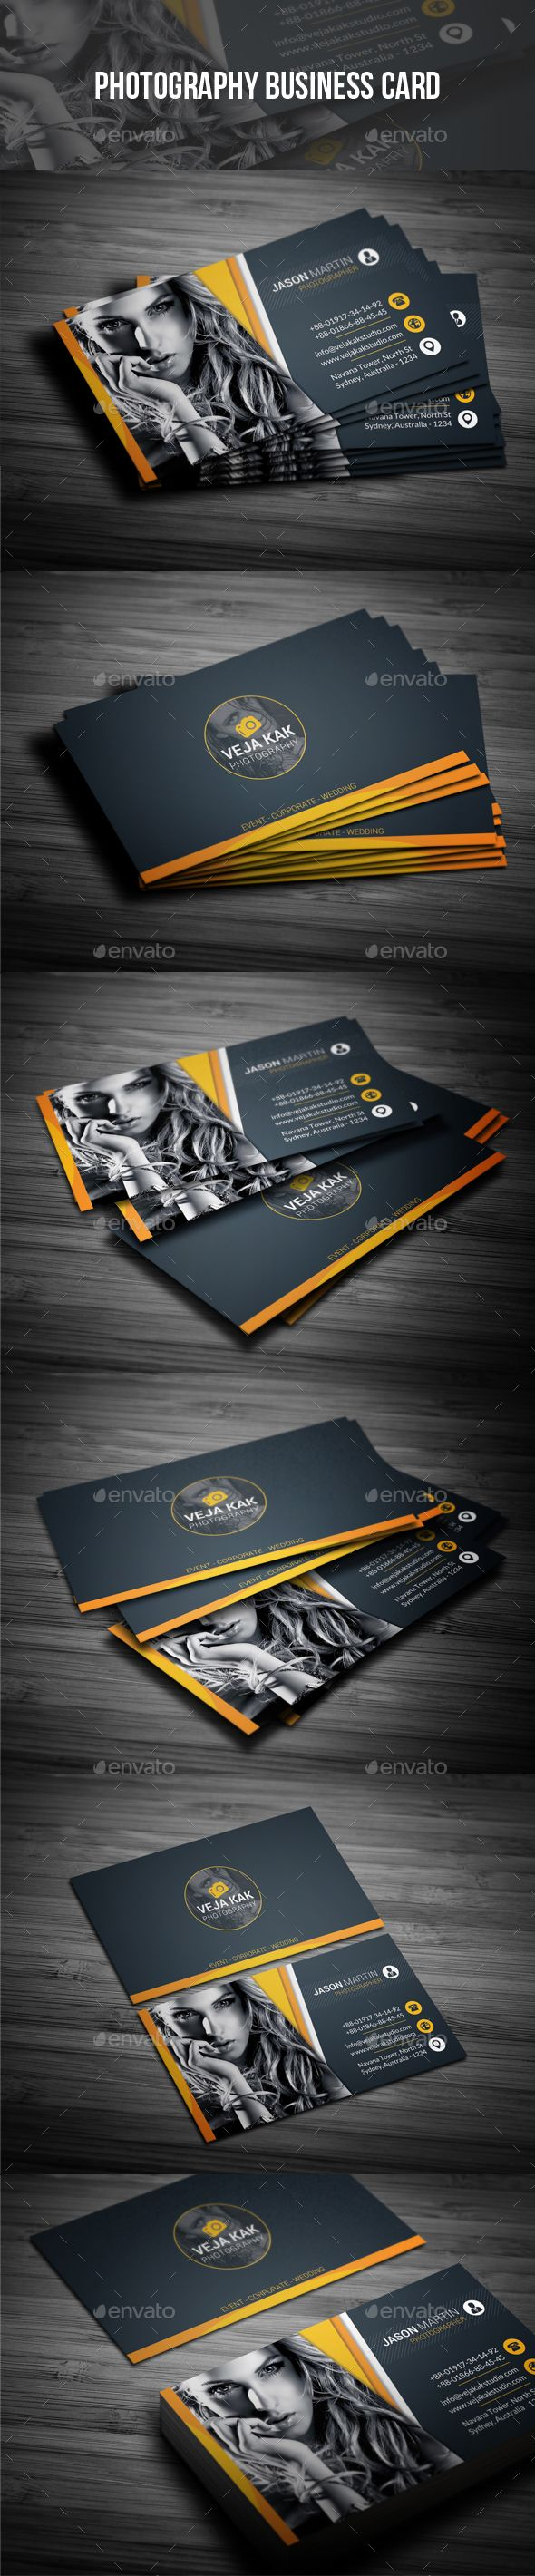 Photography business card cartes de visita carto e visita photography business card industry specific business cards download here https reheart Choice Image